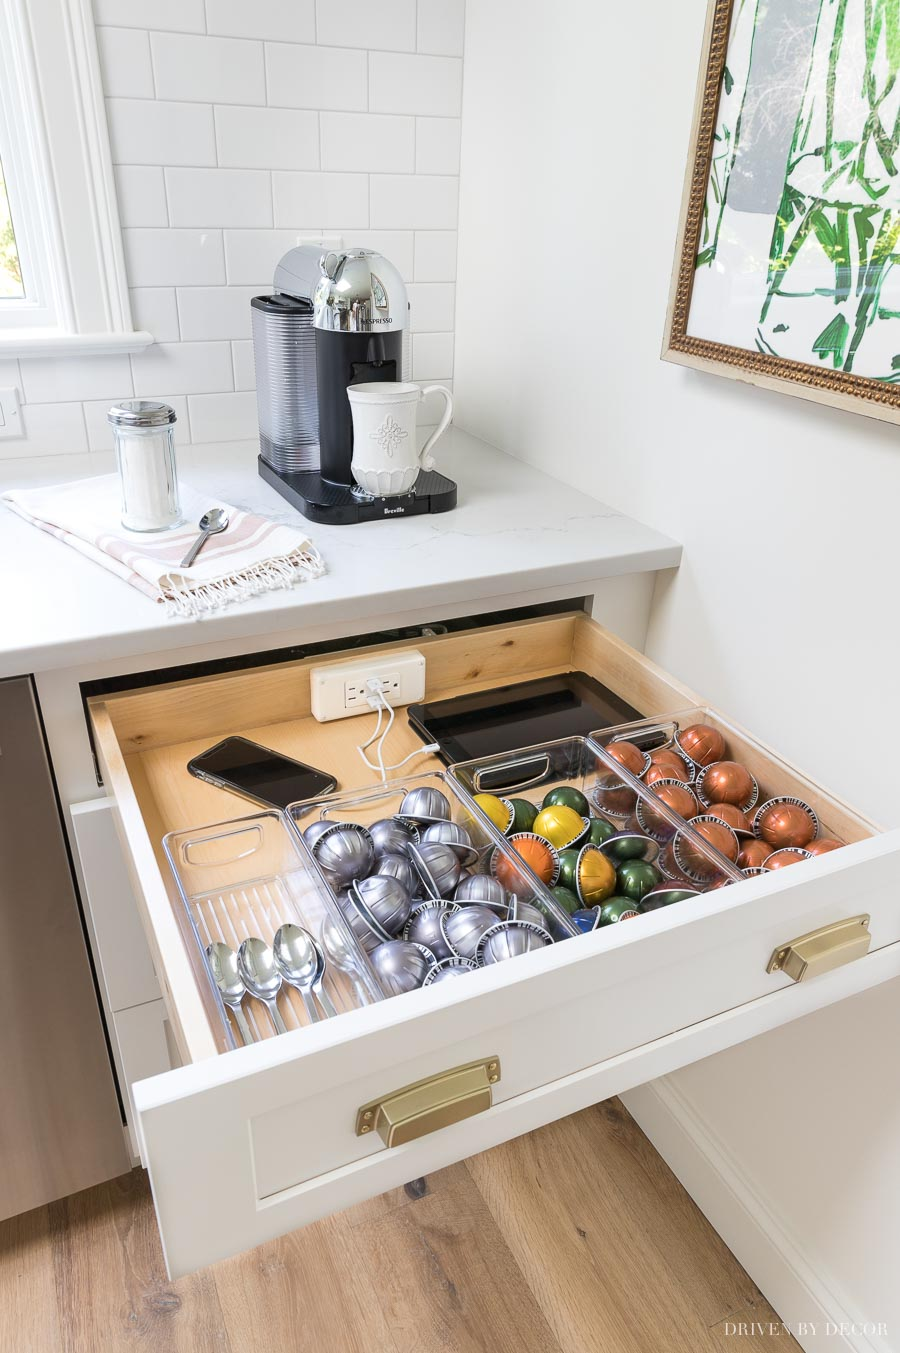 An outlet with USB ports is built into this kitchen drawer! Love having a hidden place to store electronics and plug in small kitchen appliances!